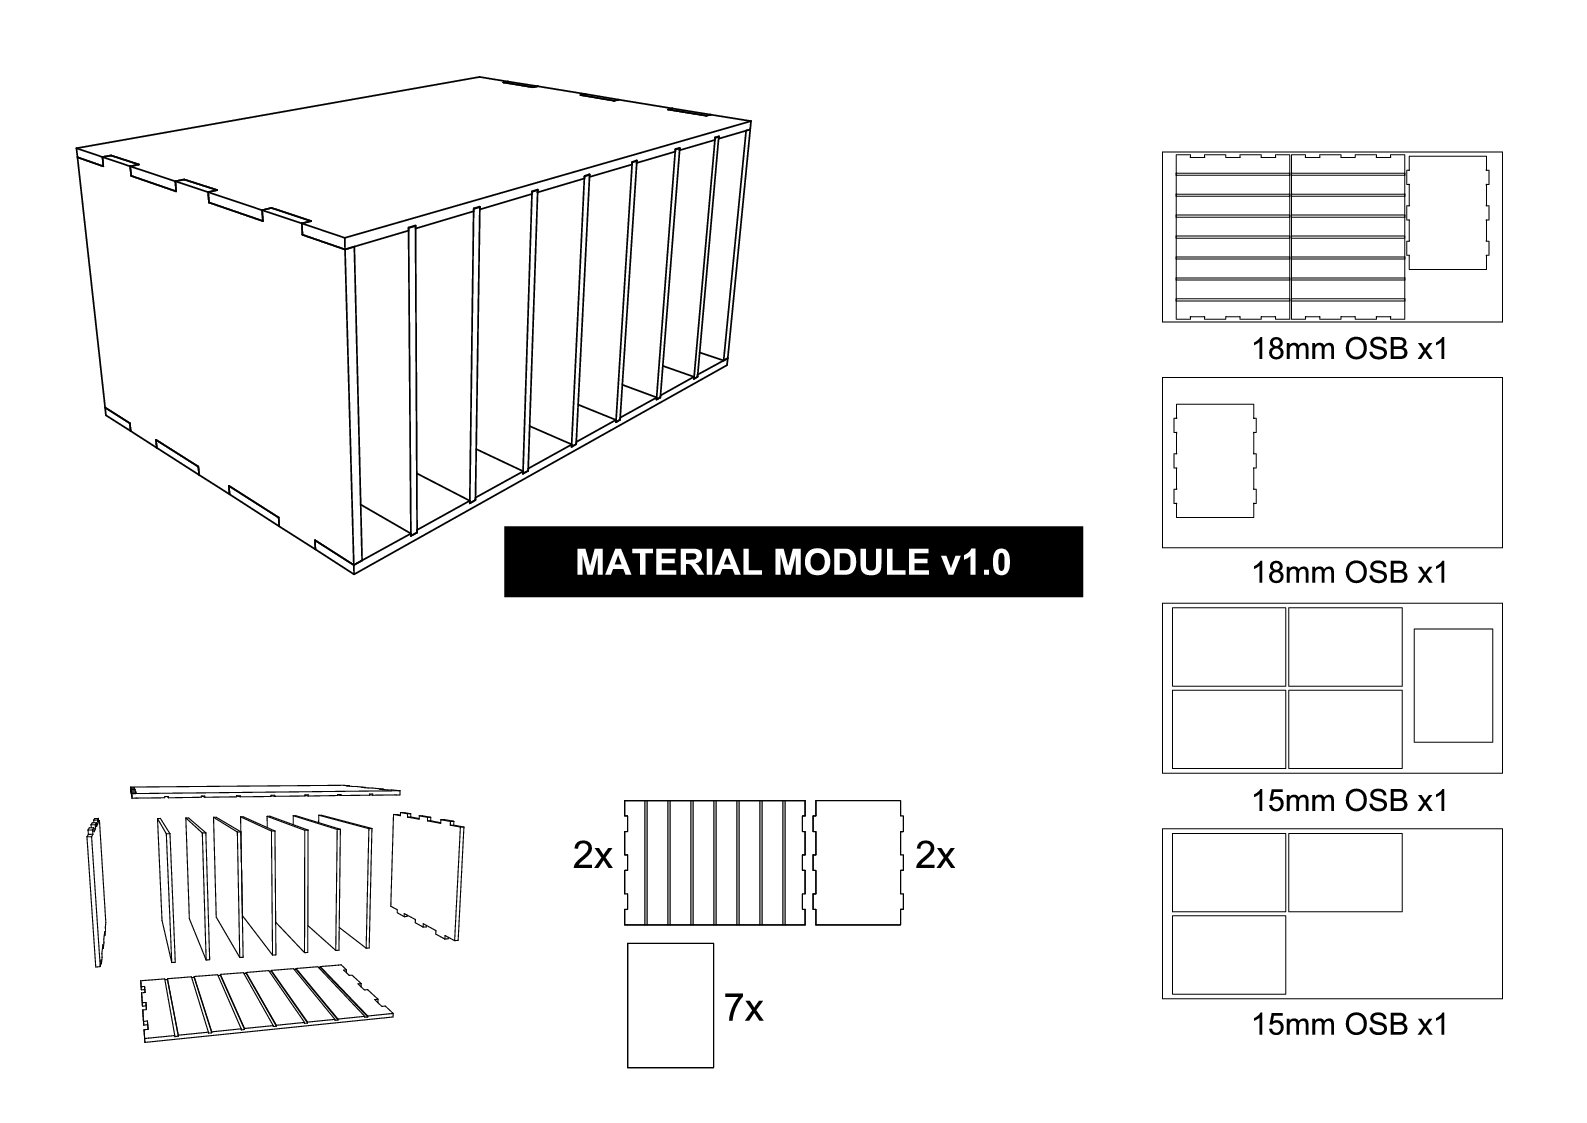 Material storage assembly drawing